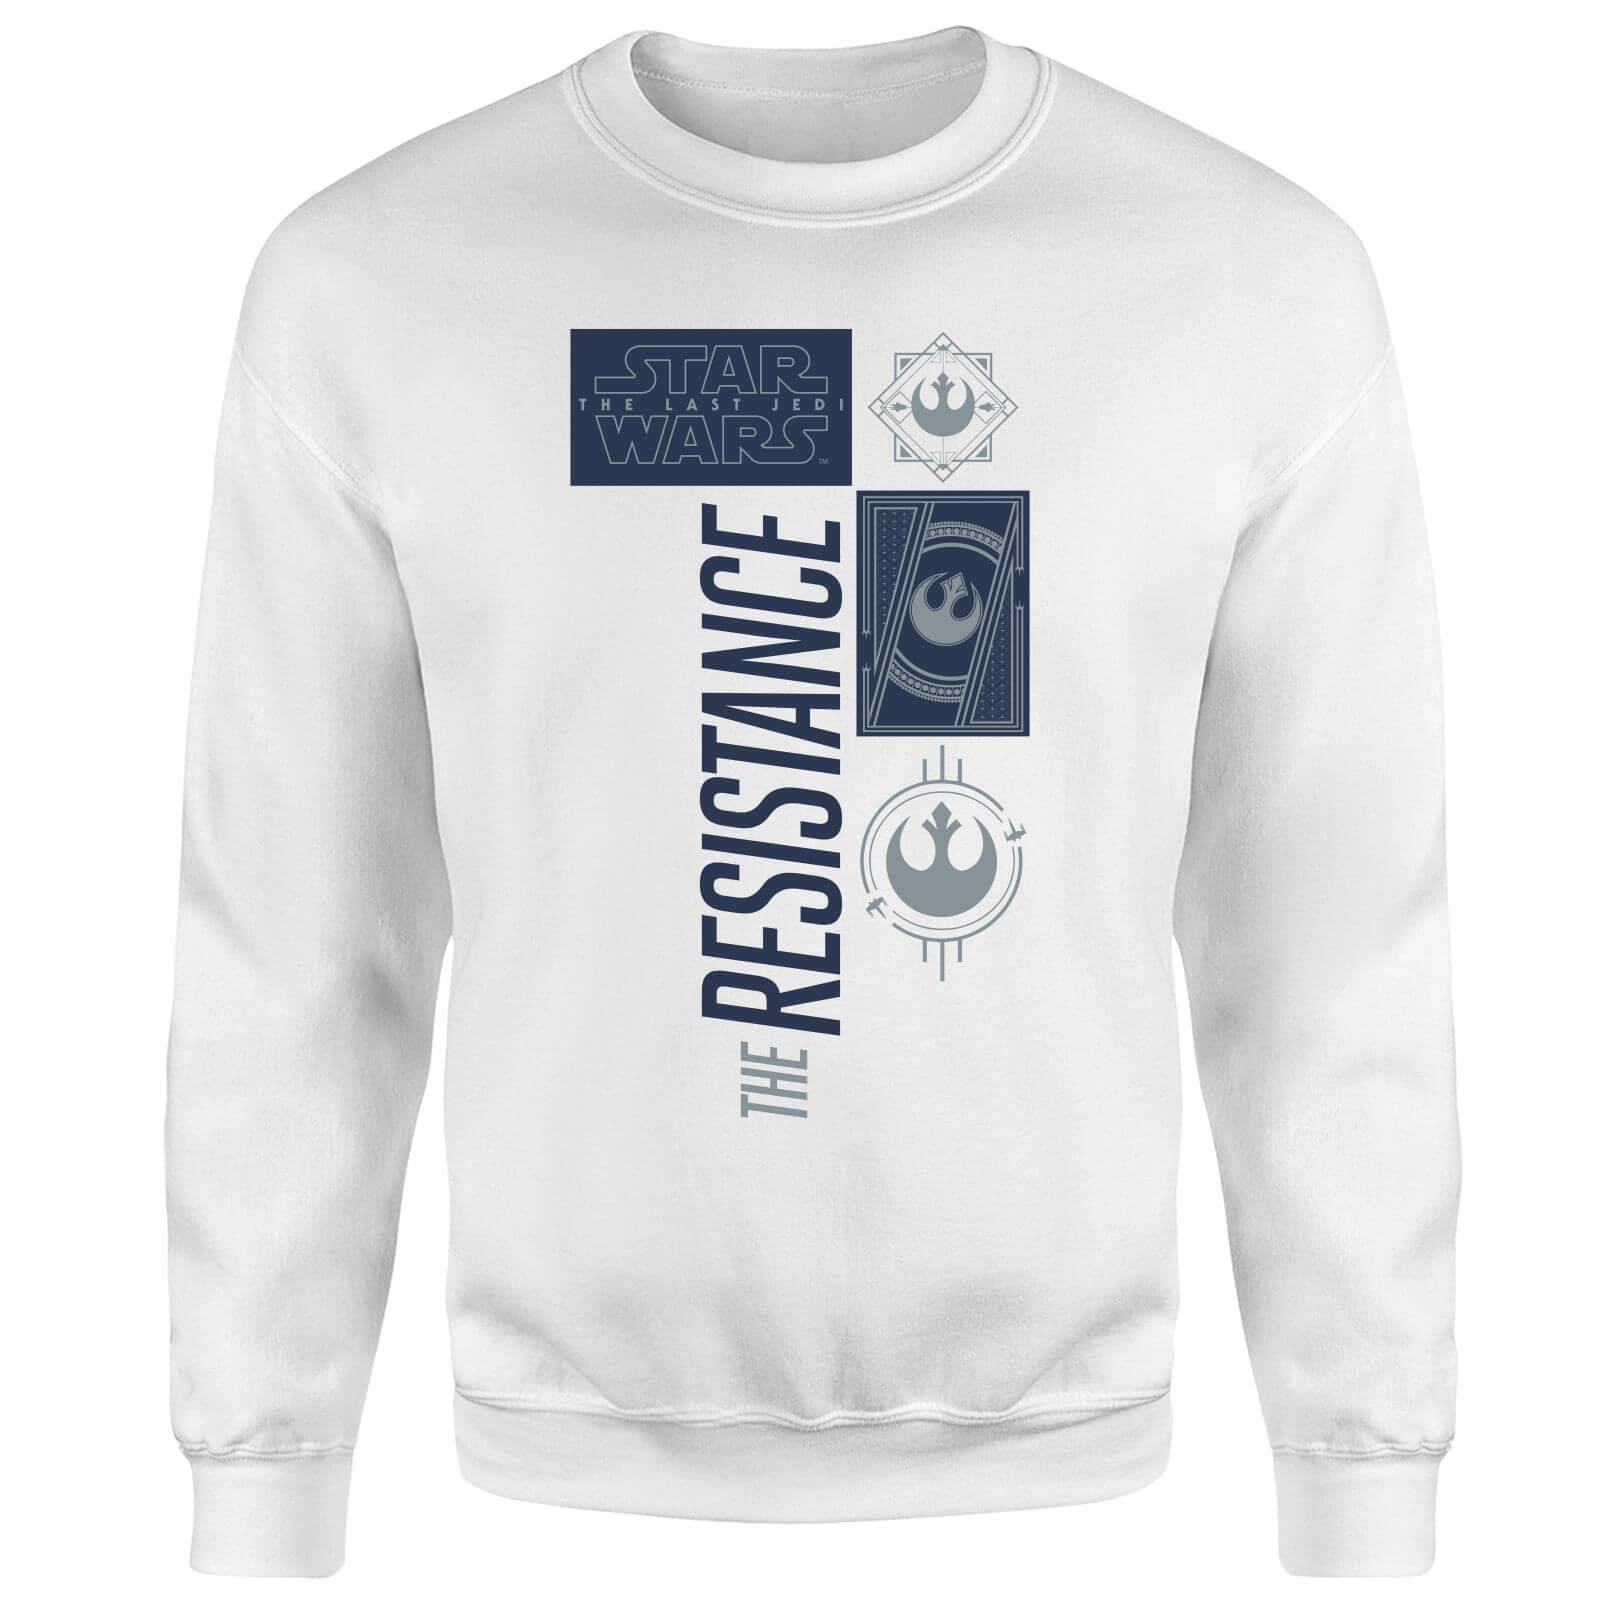 Star Wars The Resistance White Sweatshirt - White